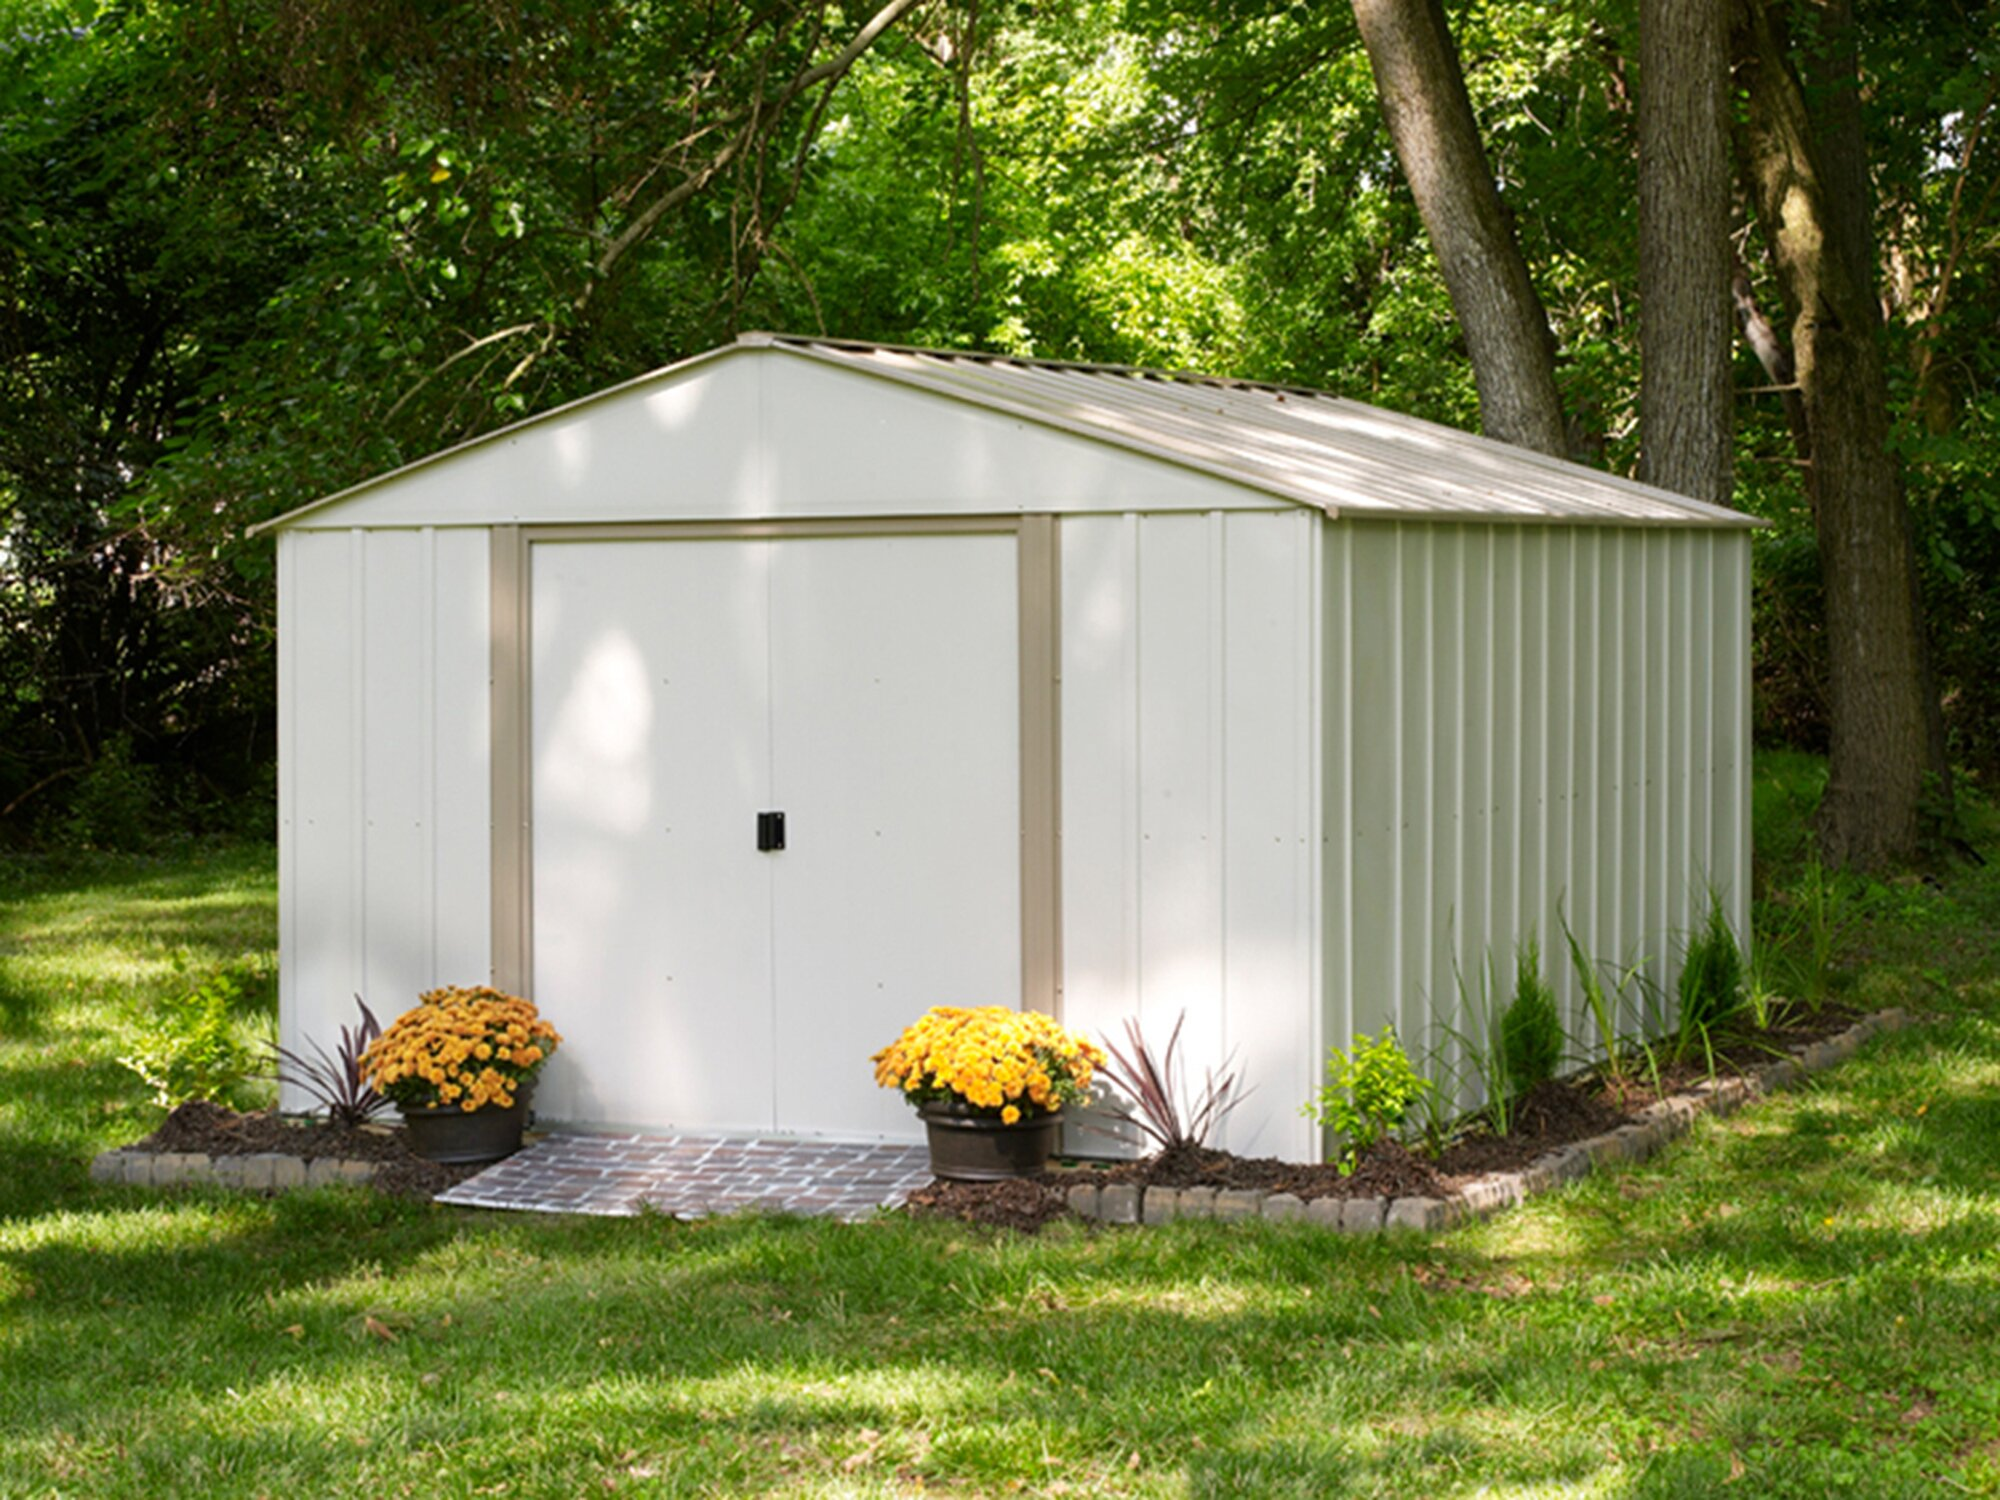 modern sale for steel sheds collections products contemporary garden storage lean shed greenterrahomes contemprorary to